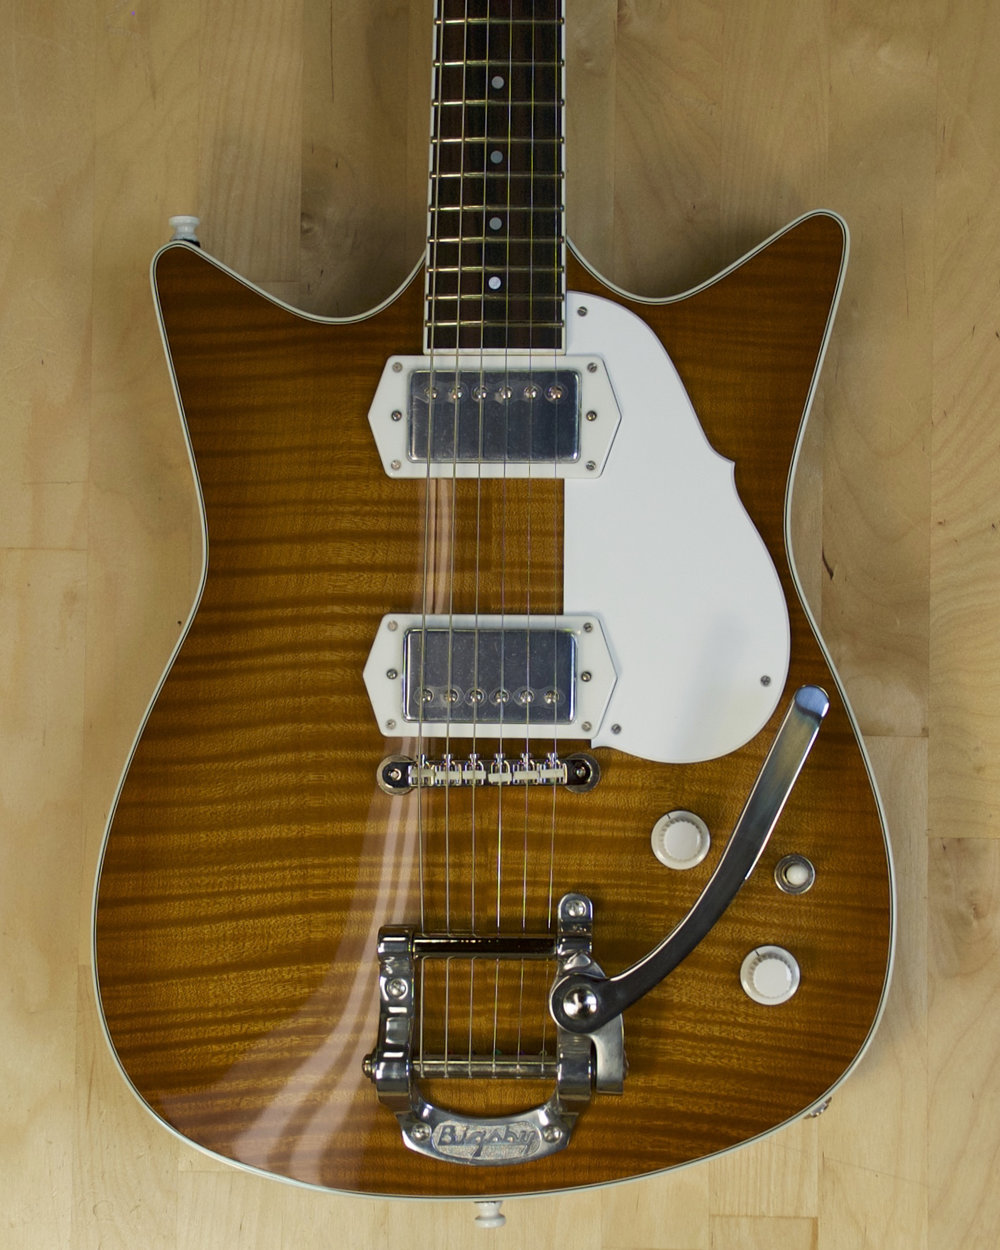 Light Amber Burst with B5 Bigsby - Available